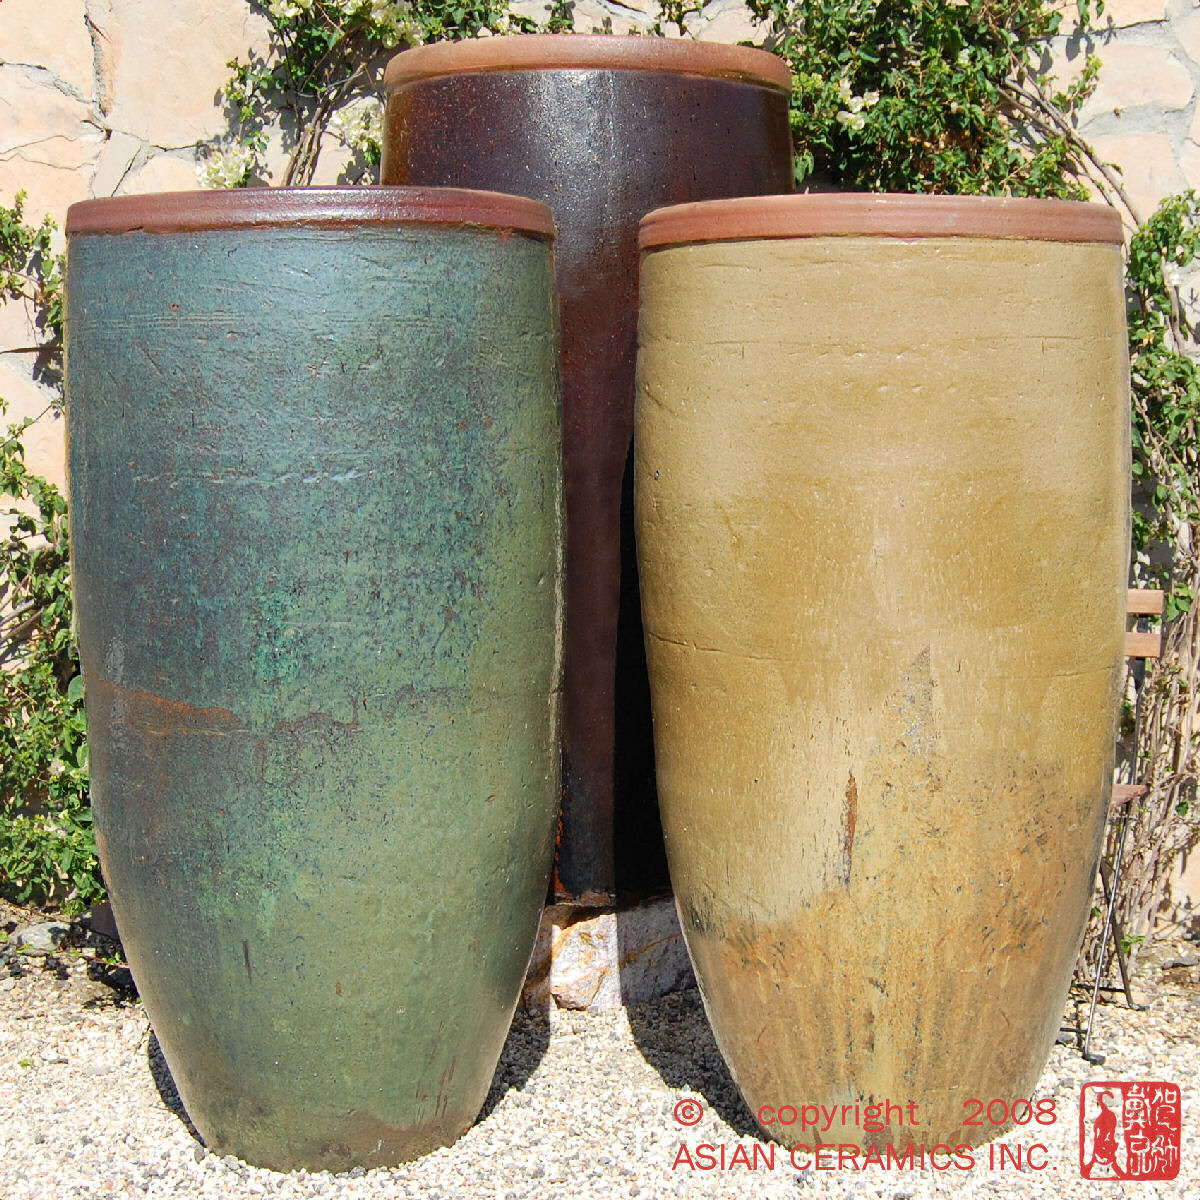 Tall Planters | Decorative Planters | Ceramic Planter Pots